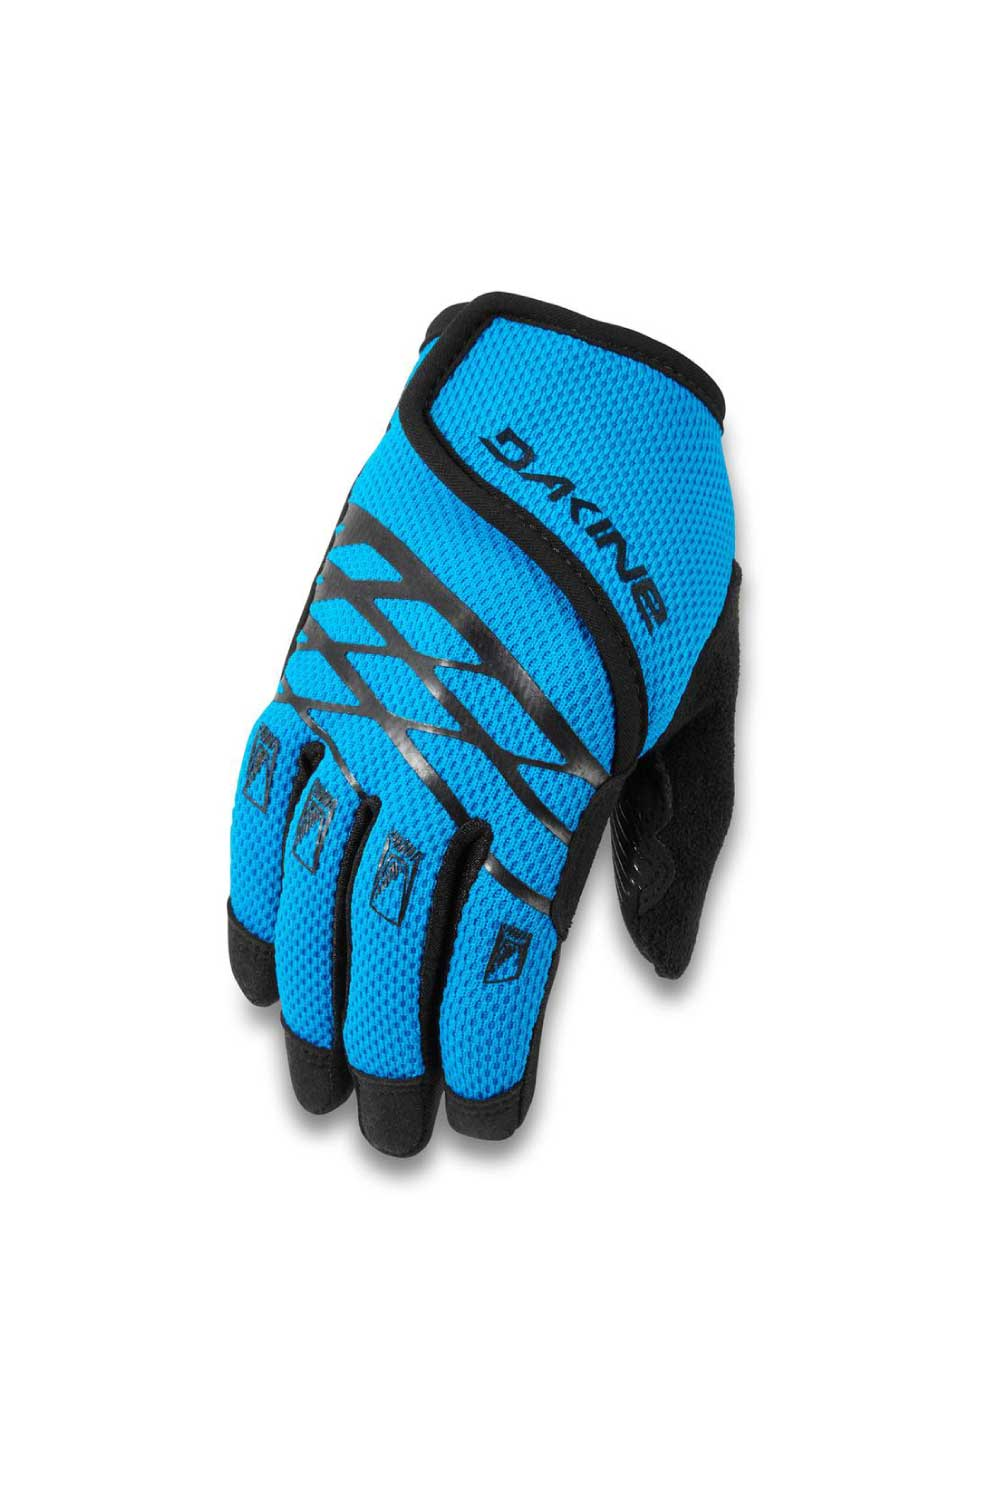 Dakine 19 Kids Prodigy Bike Gloves